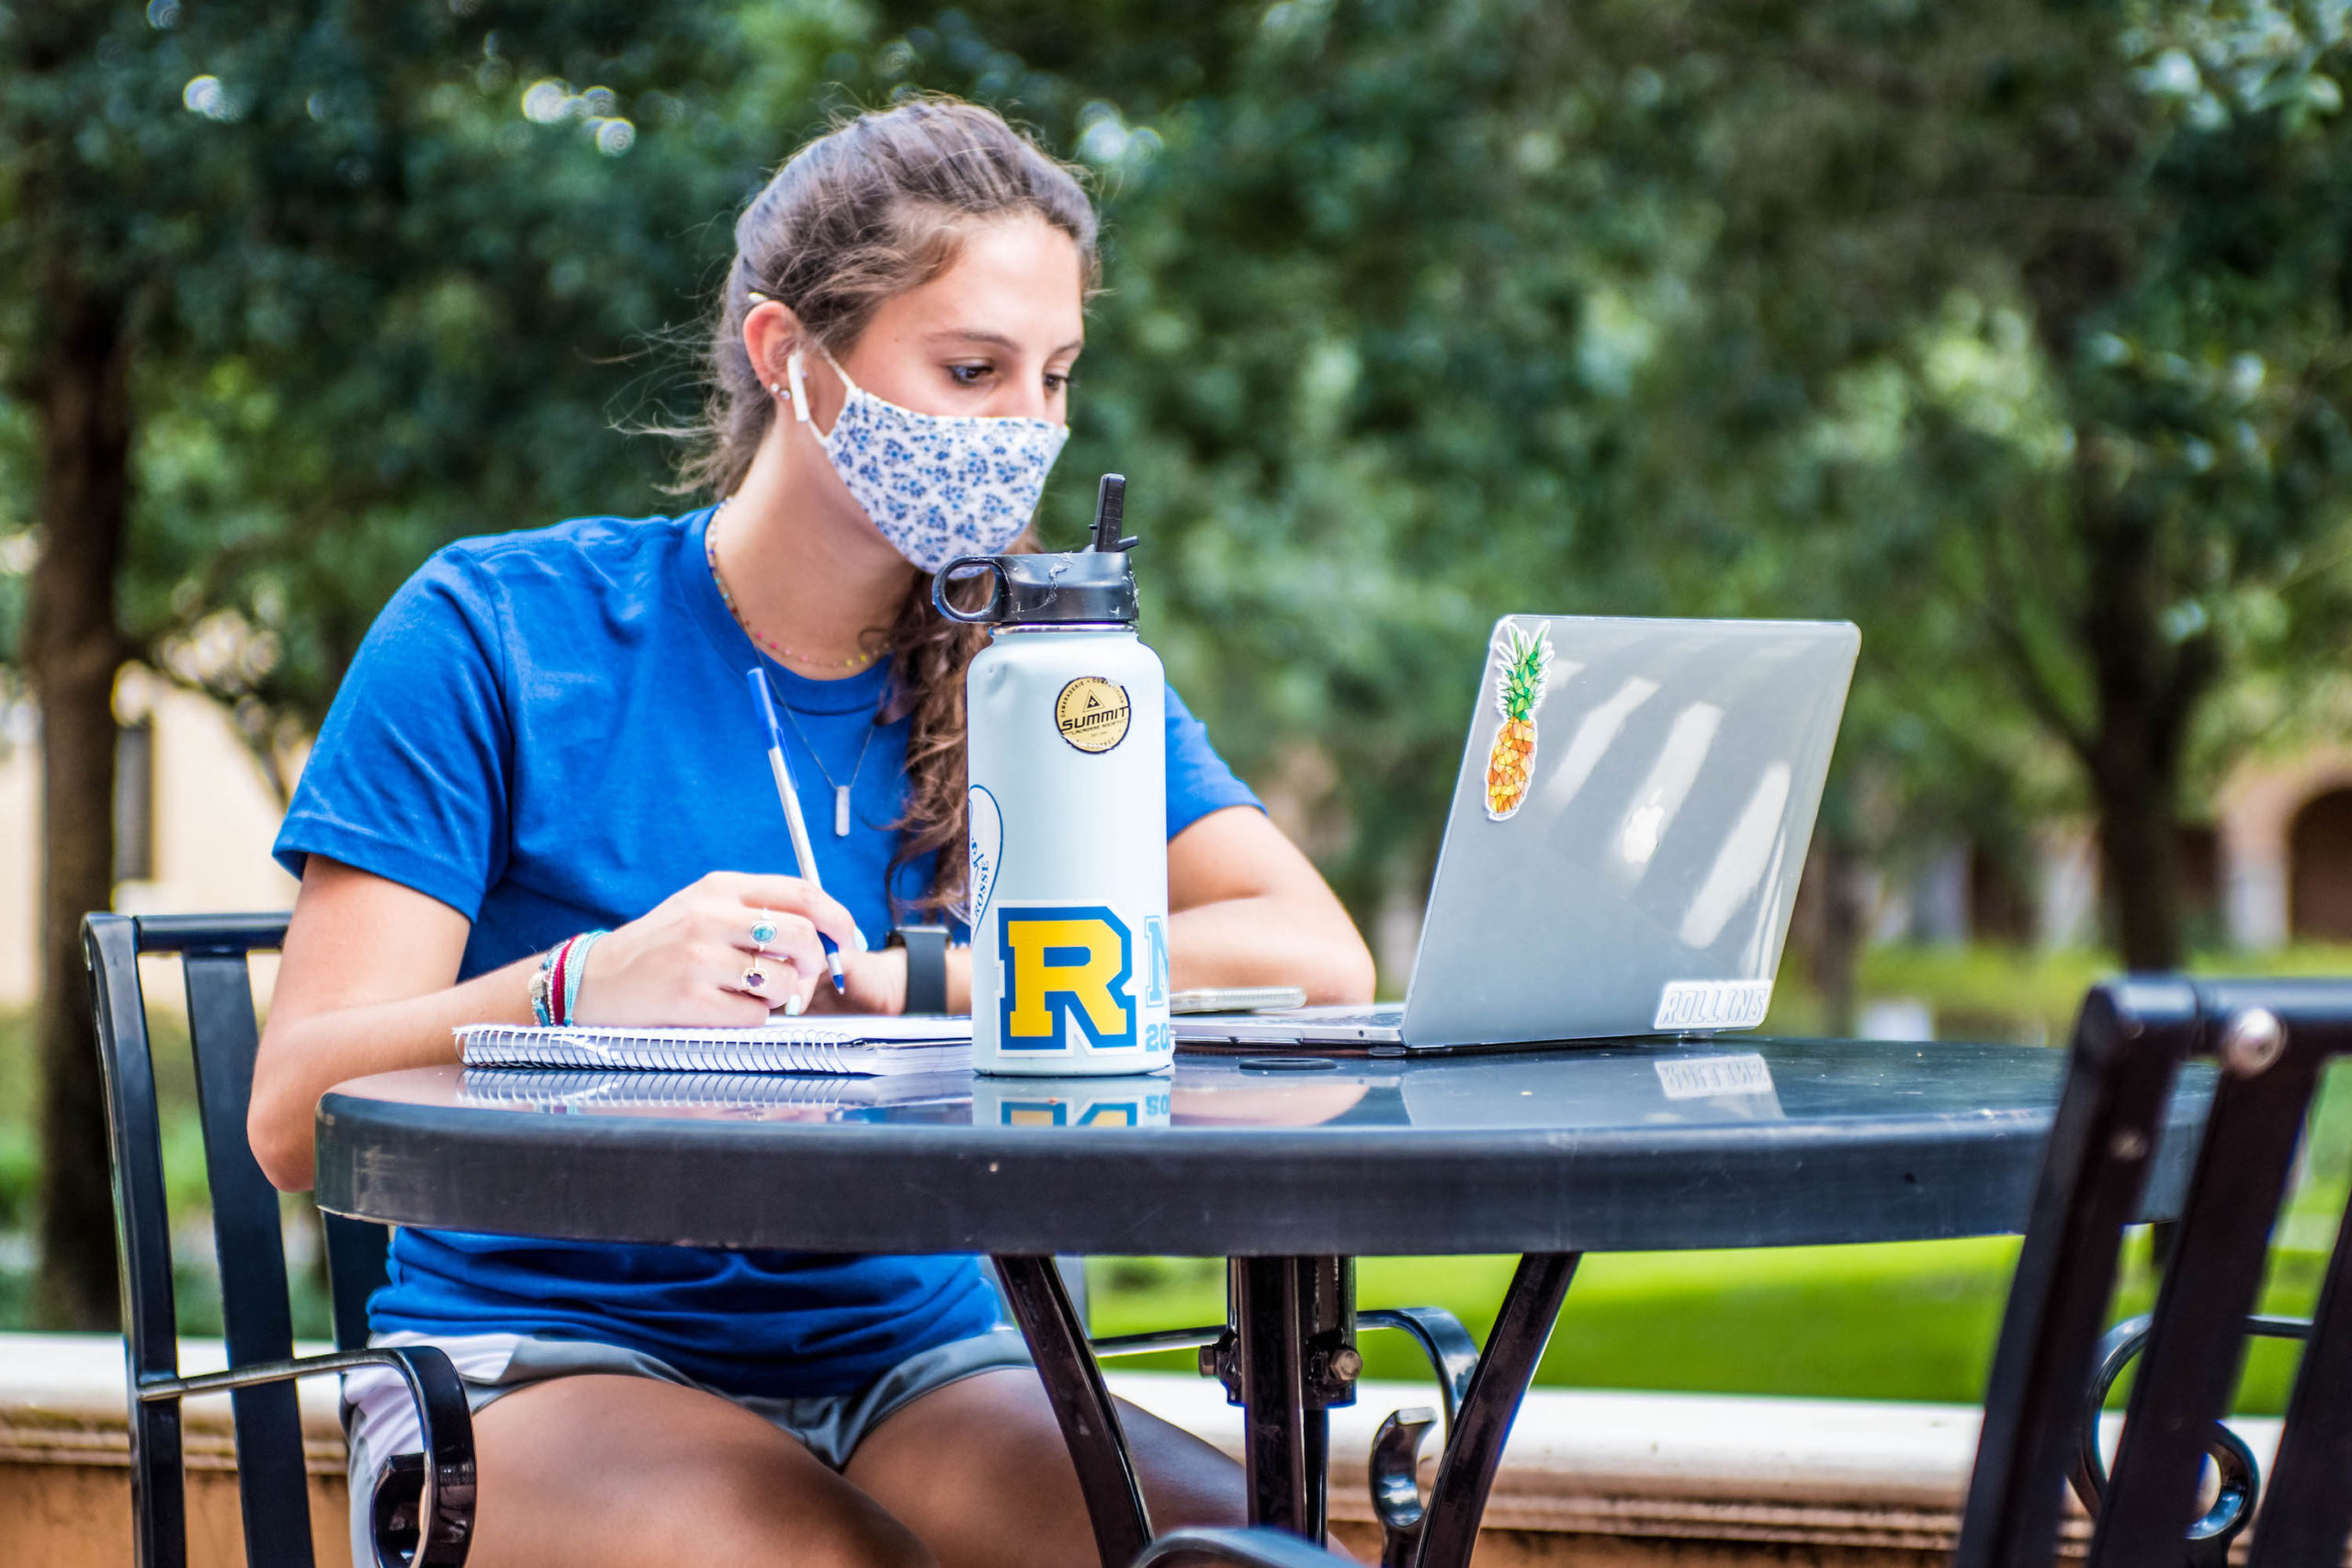 Rollins College student studies outside while wearing a face mask.